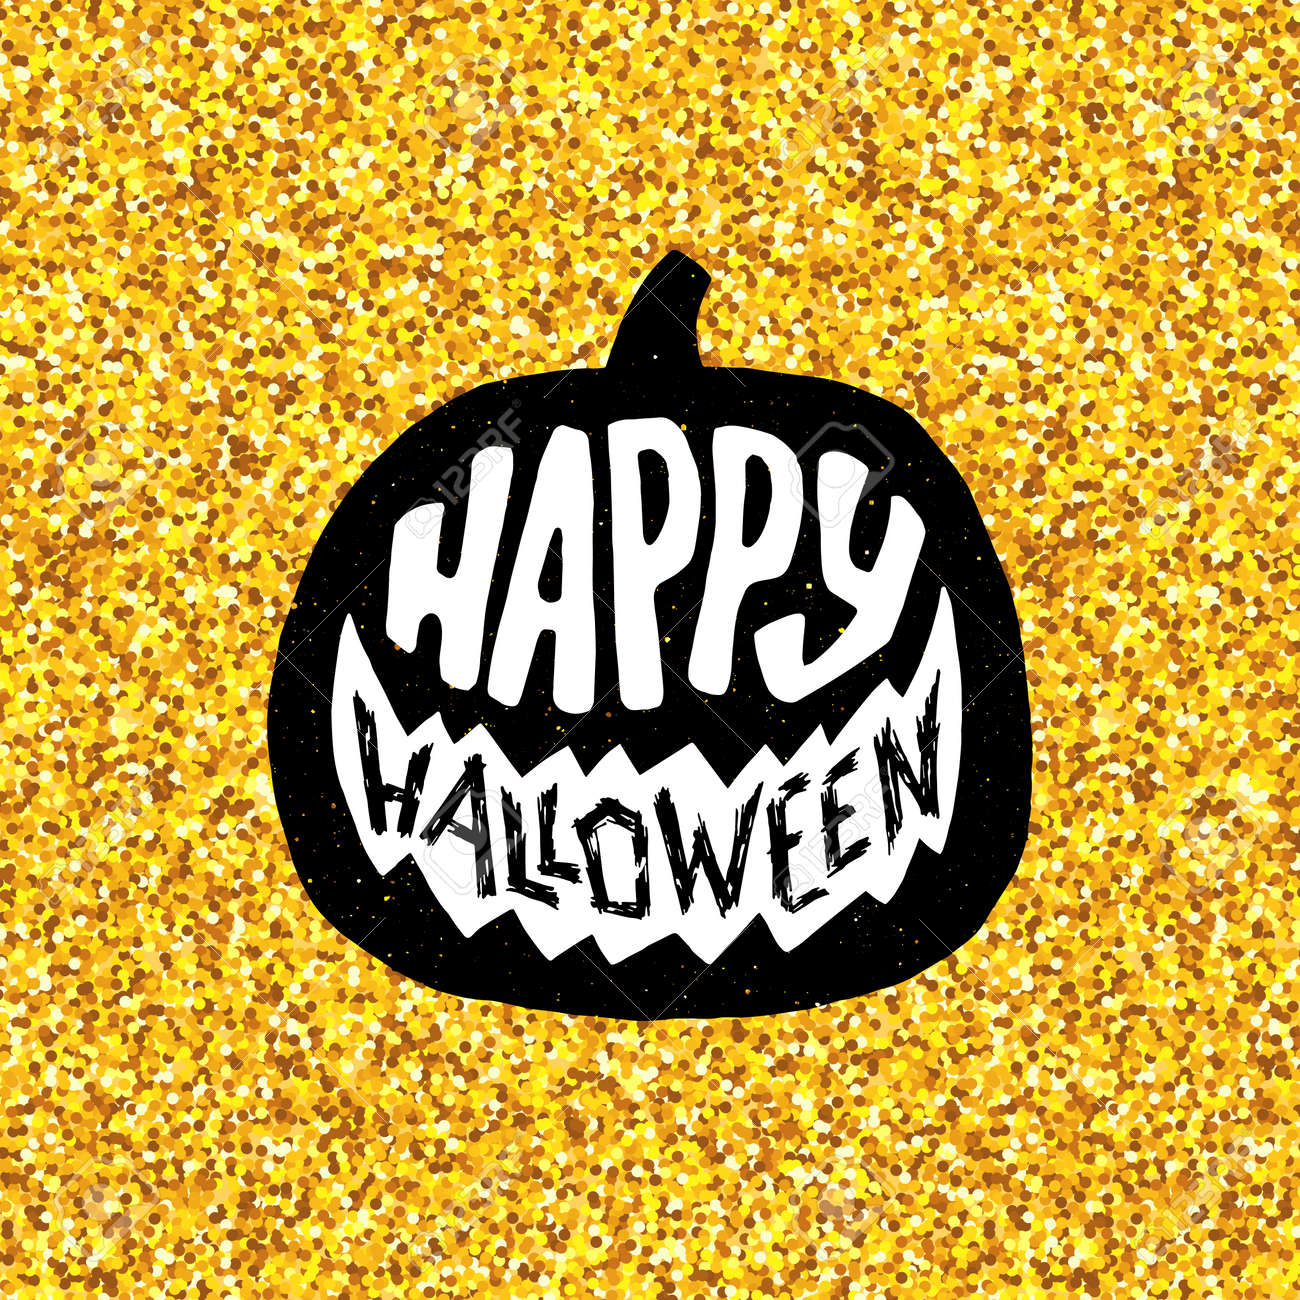 Happy Halloween Greeting Card Design. Festive Banner For 31 October Night  Party With Lettering On